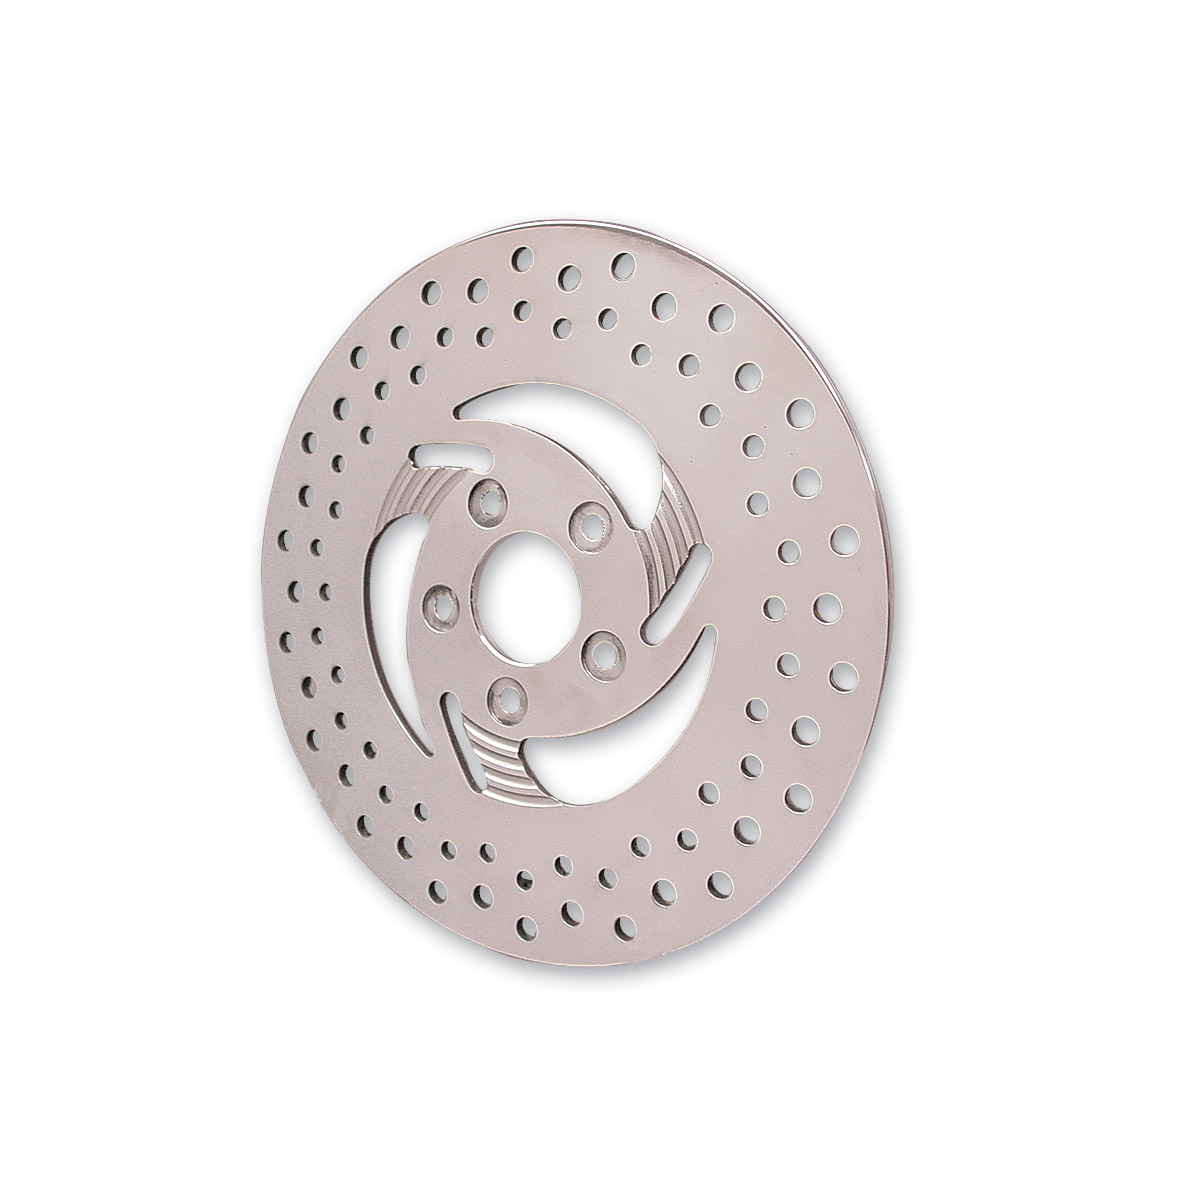 J&P Cycles® 11-1/2″ Razor Style Rear Right Brake Disc